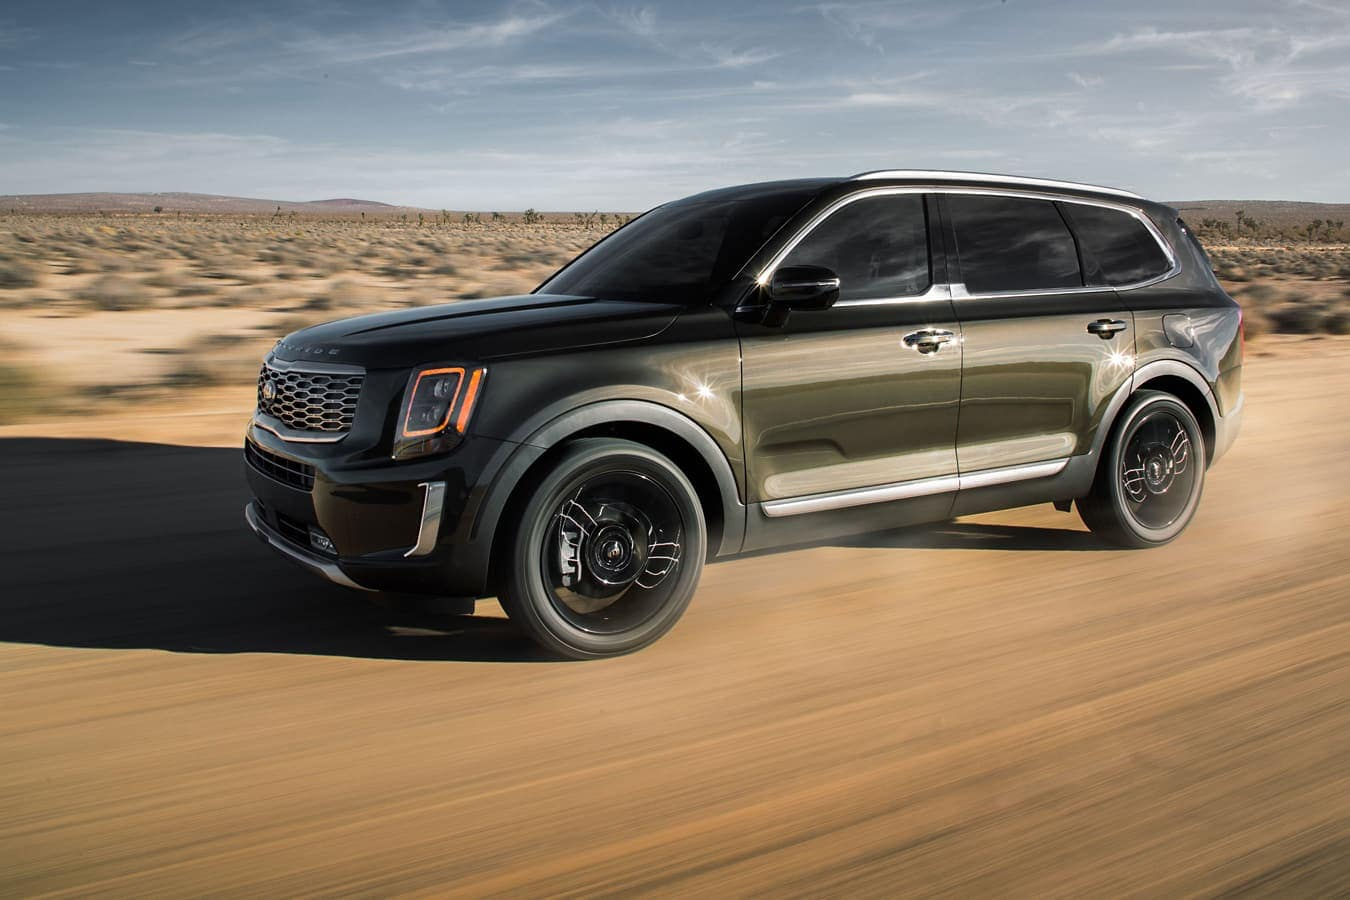 Michigan News - 2020 Kia Telluride MotorTrend SUV of the Year